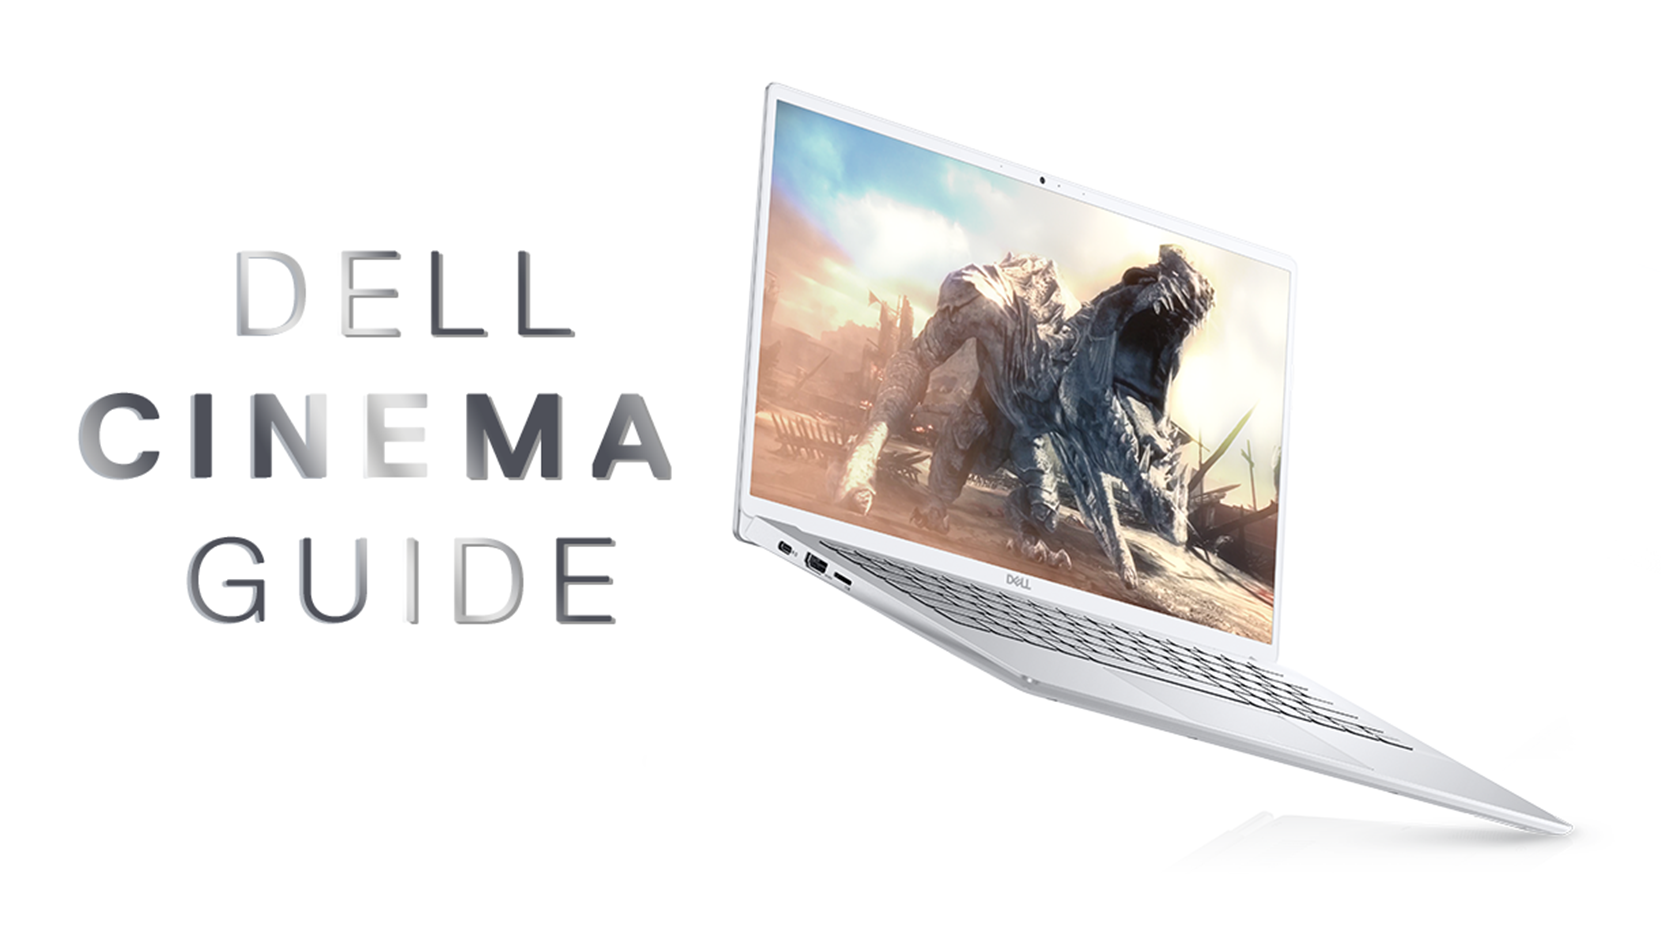 Dell Cinema Guide takes the toil out of searching for content over multiple  streaming services - NotebookCheck.net News